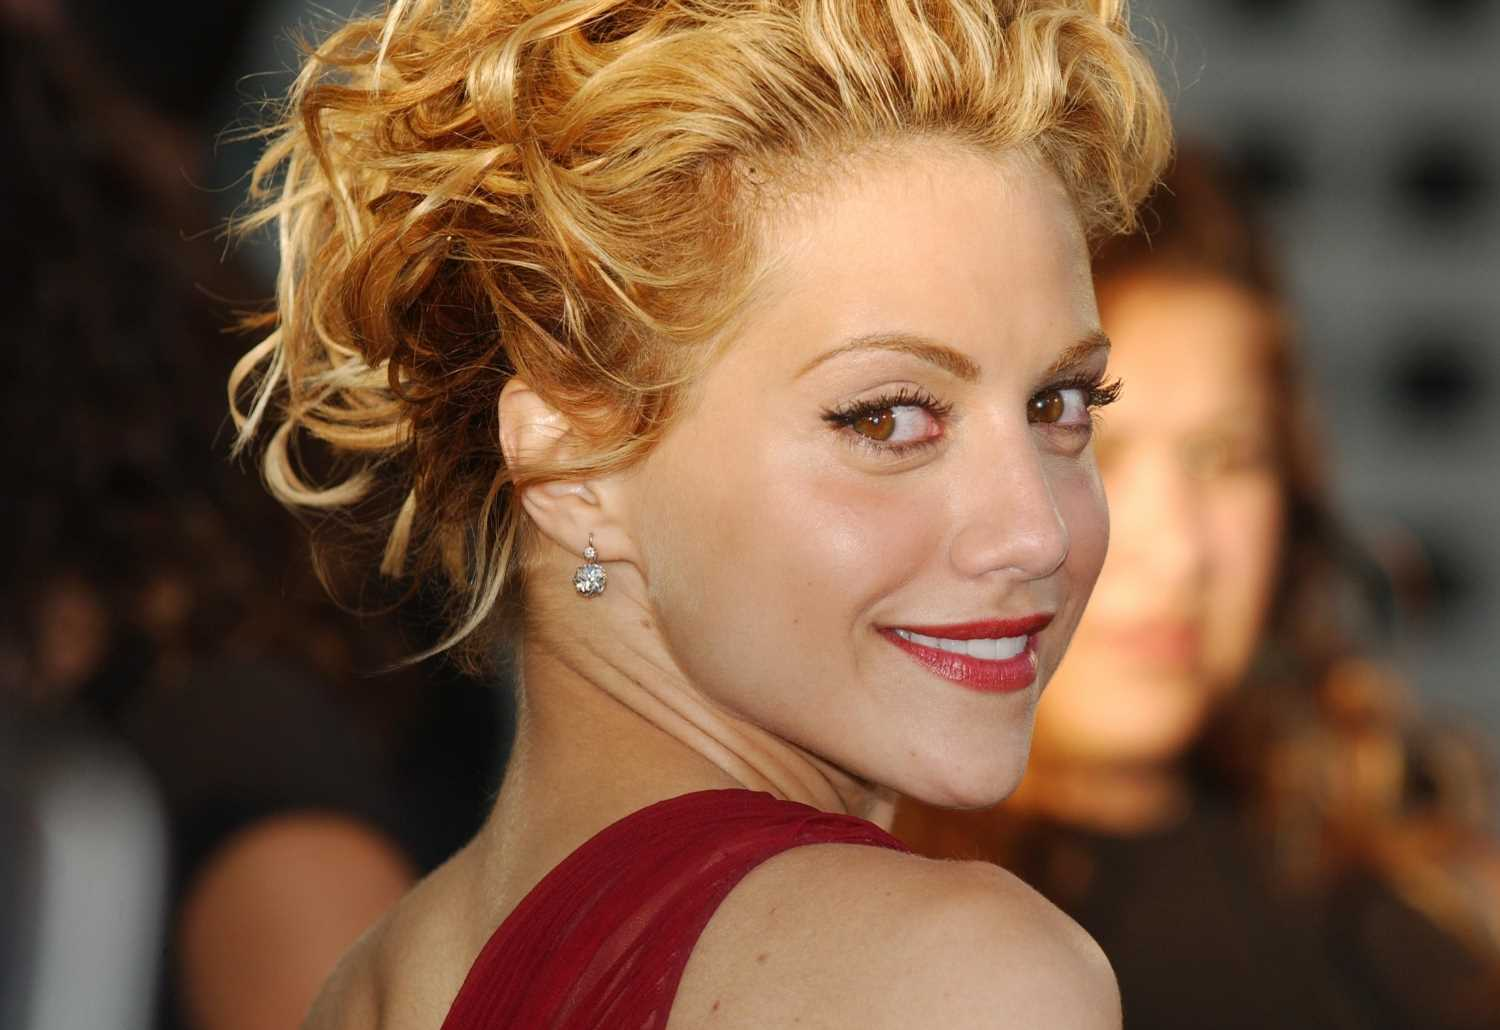 Inside Brittany Murphy's tragic final days before her death – from haunted mansion to 'controlling' husband